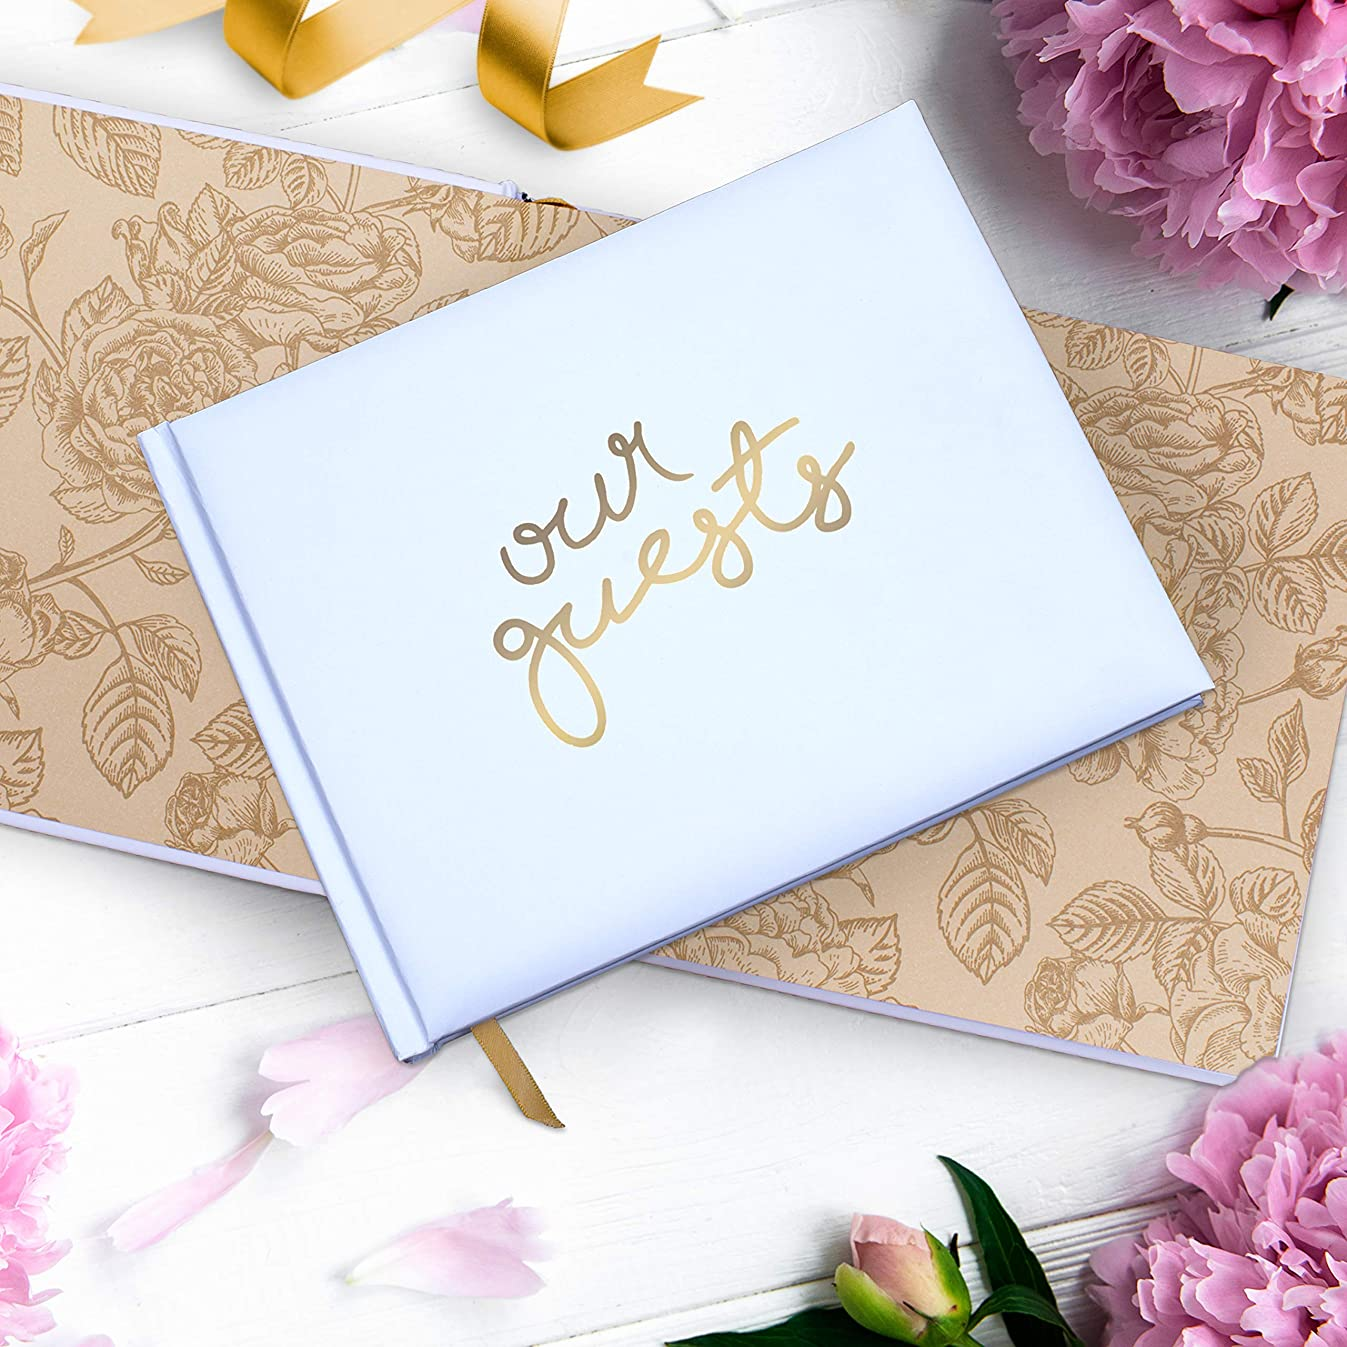 """Wedding Guest Book   Perfect Bridal Registry for Signature & Messages   Best Shower Gift   Wedding Day Memory Book   Hard Cover with Gold Foil, 64 Gold Gilded Pages & Ribbon Bookmark   7"""" x 9"""""""